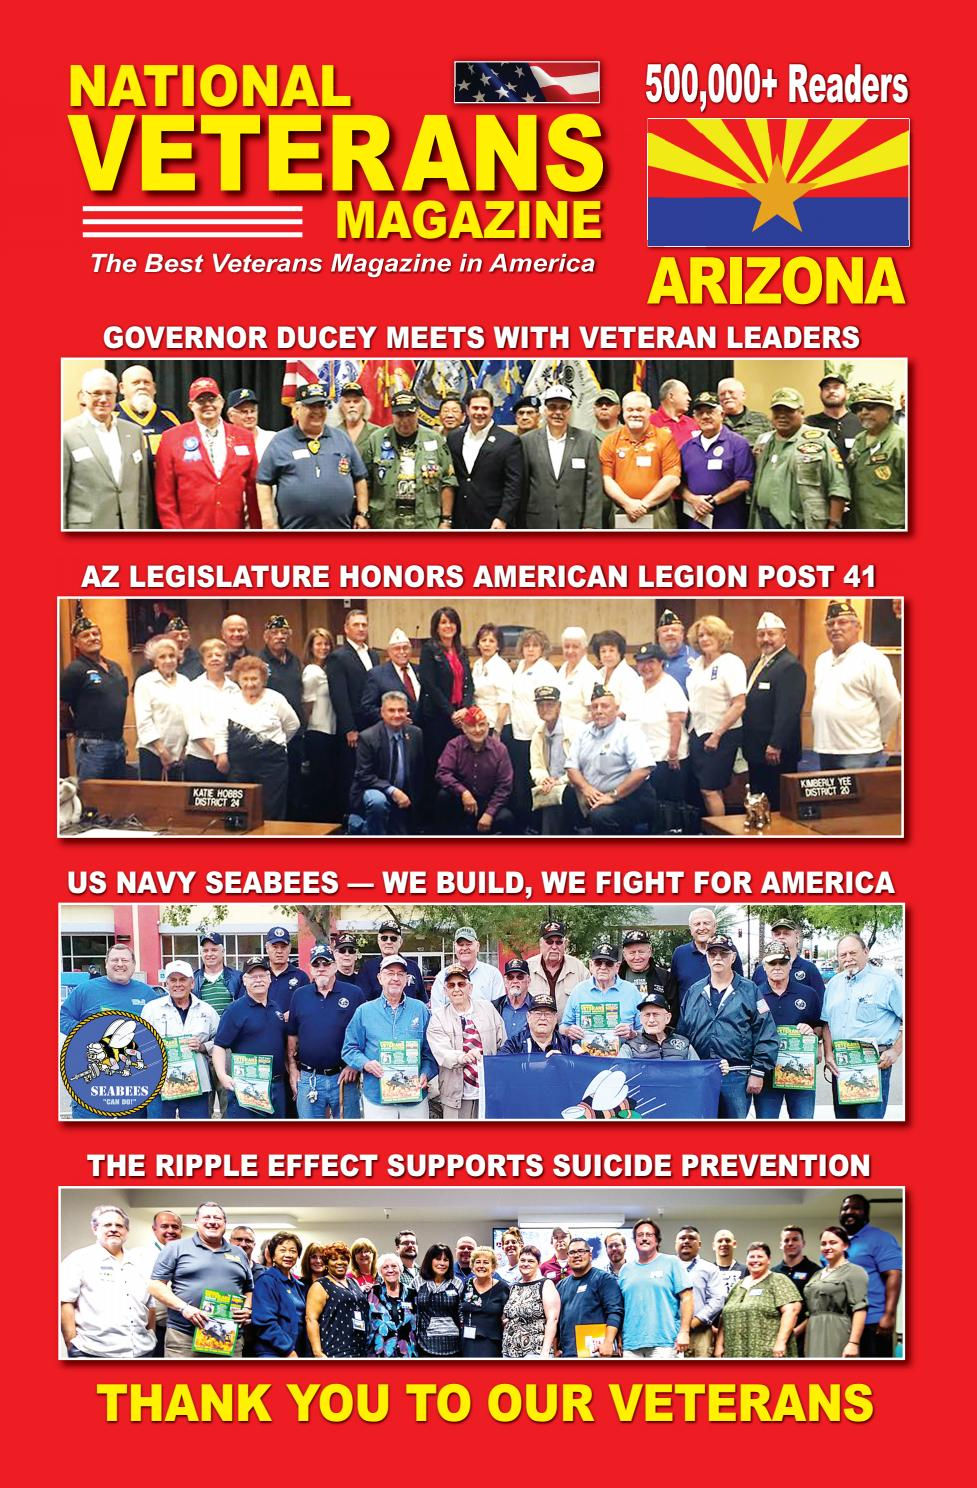 National Veterans Magazine - Arizona by Mark Field - issuu